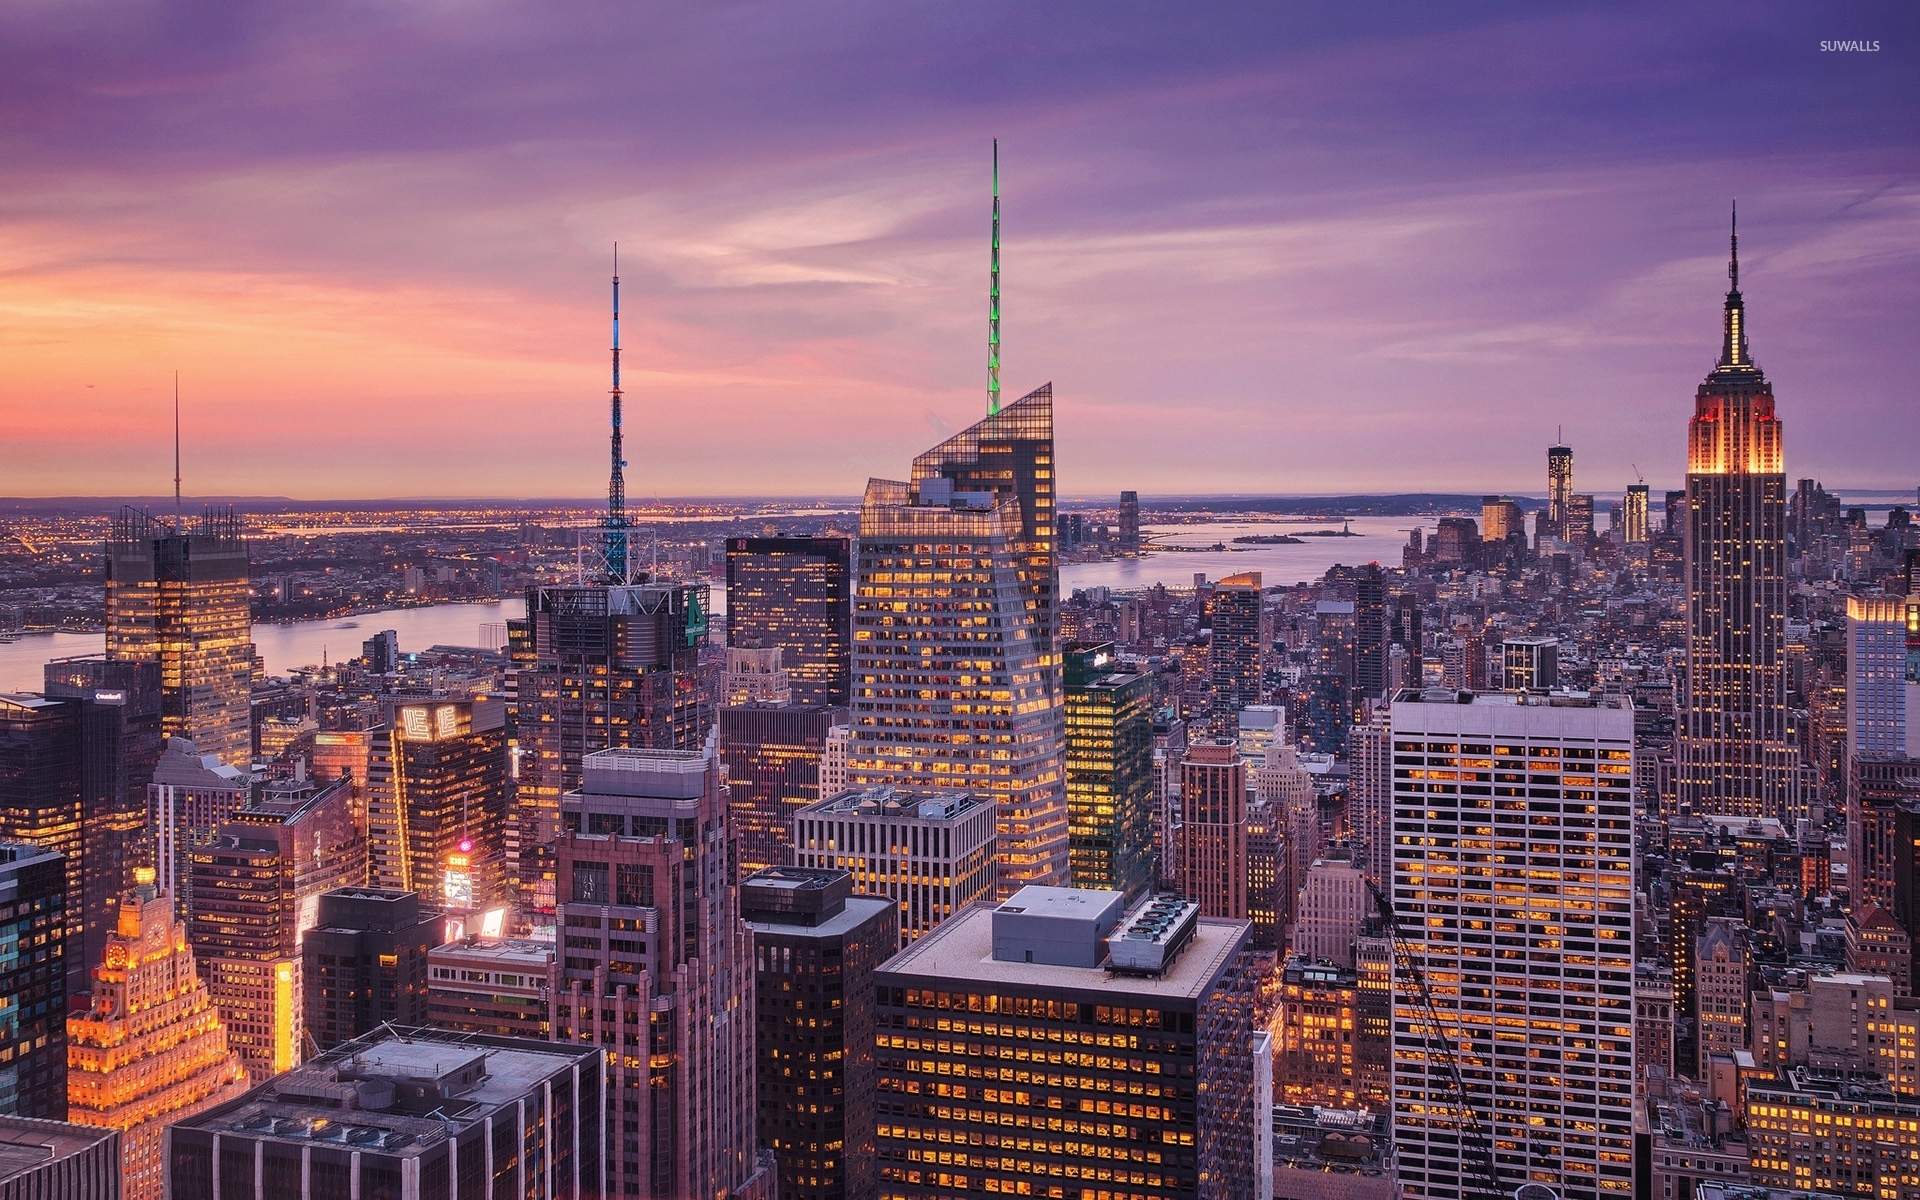 a new york i nuovi executive master da quest 39 anno con